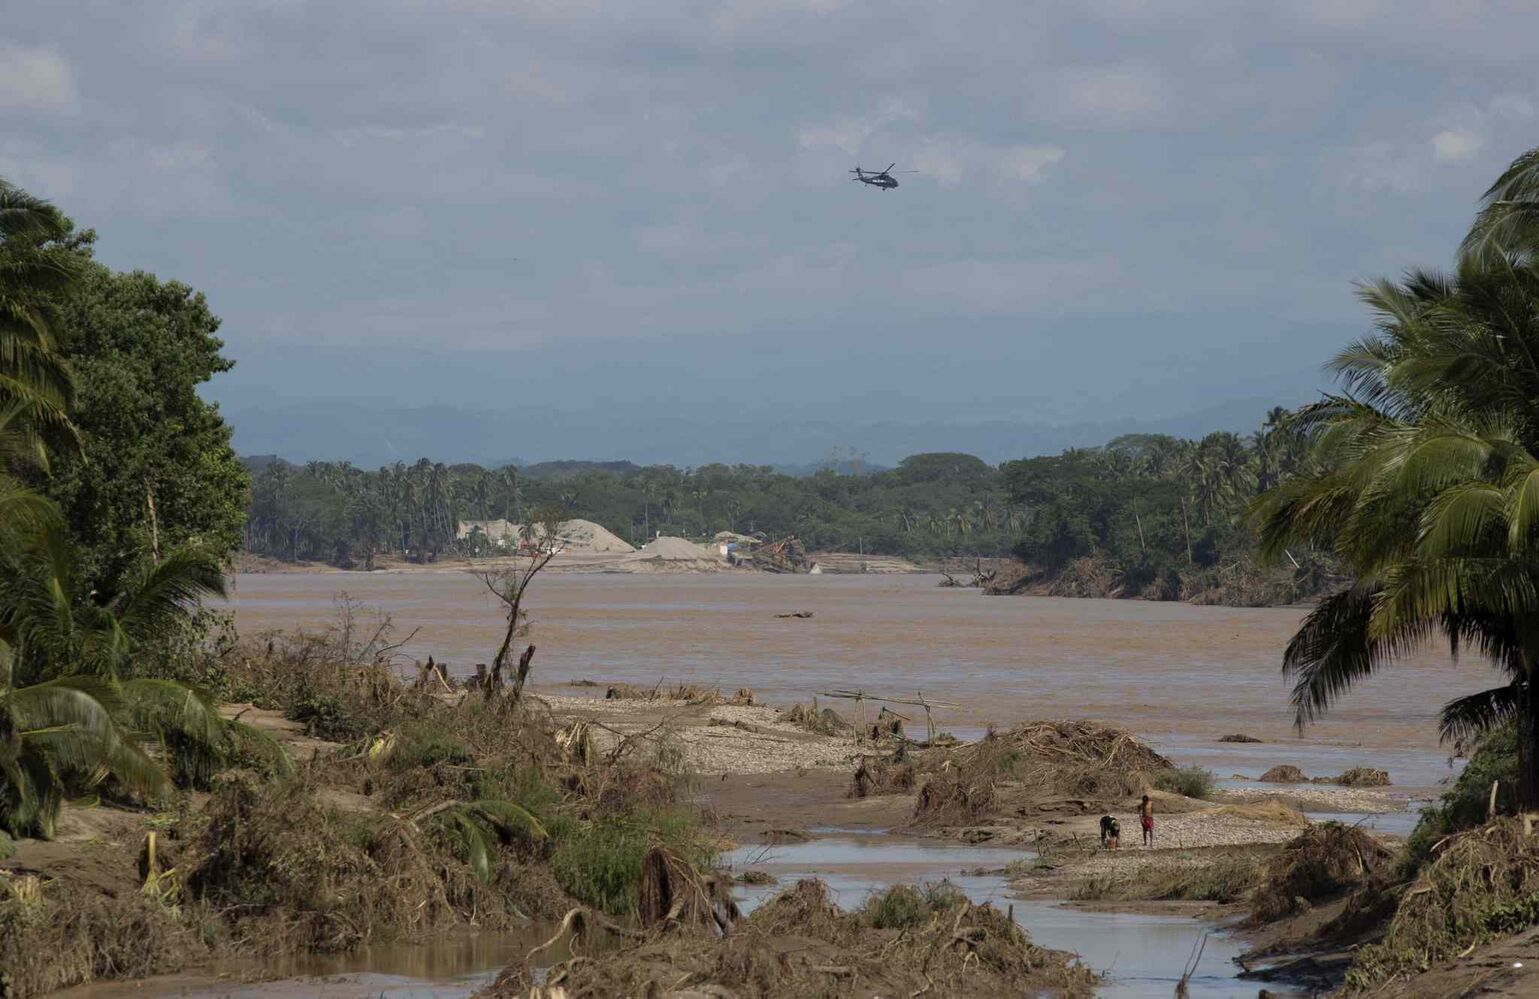 A federal police helicopter flies over a river, south of Acapulco, near the town of Lomas de Chapultepec, Guerrero state, Mexico, Wednesday, Sept. 18, 2013.  Emergency flights began arriving in Acapulco to evacuate at least 40,000 mainly Mexican tourists stranded in the resort city.